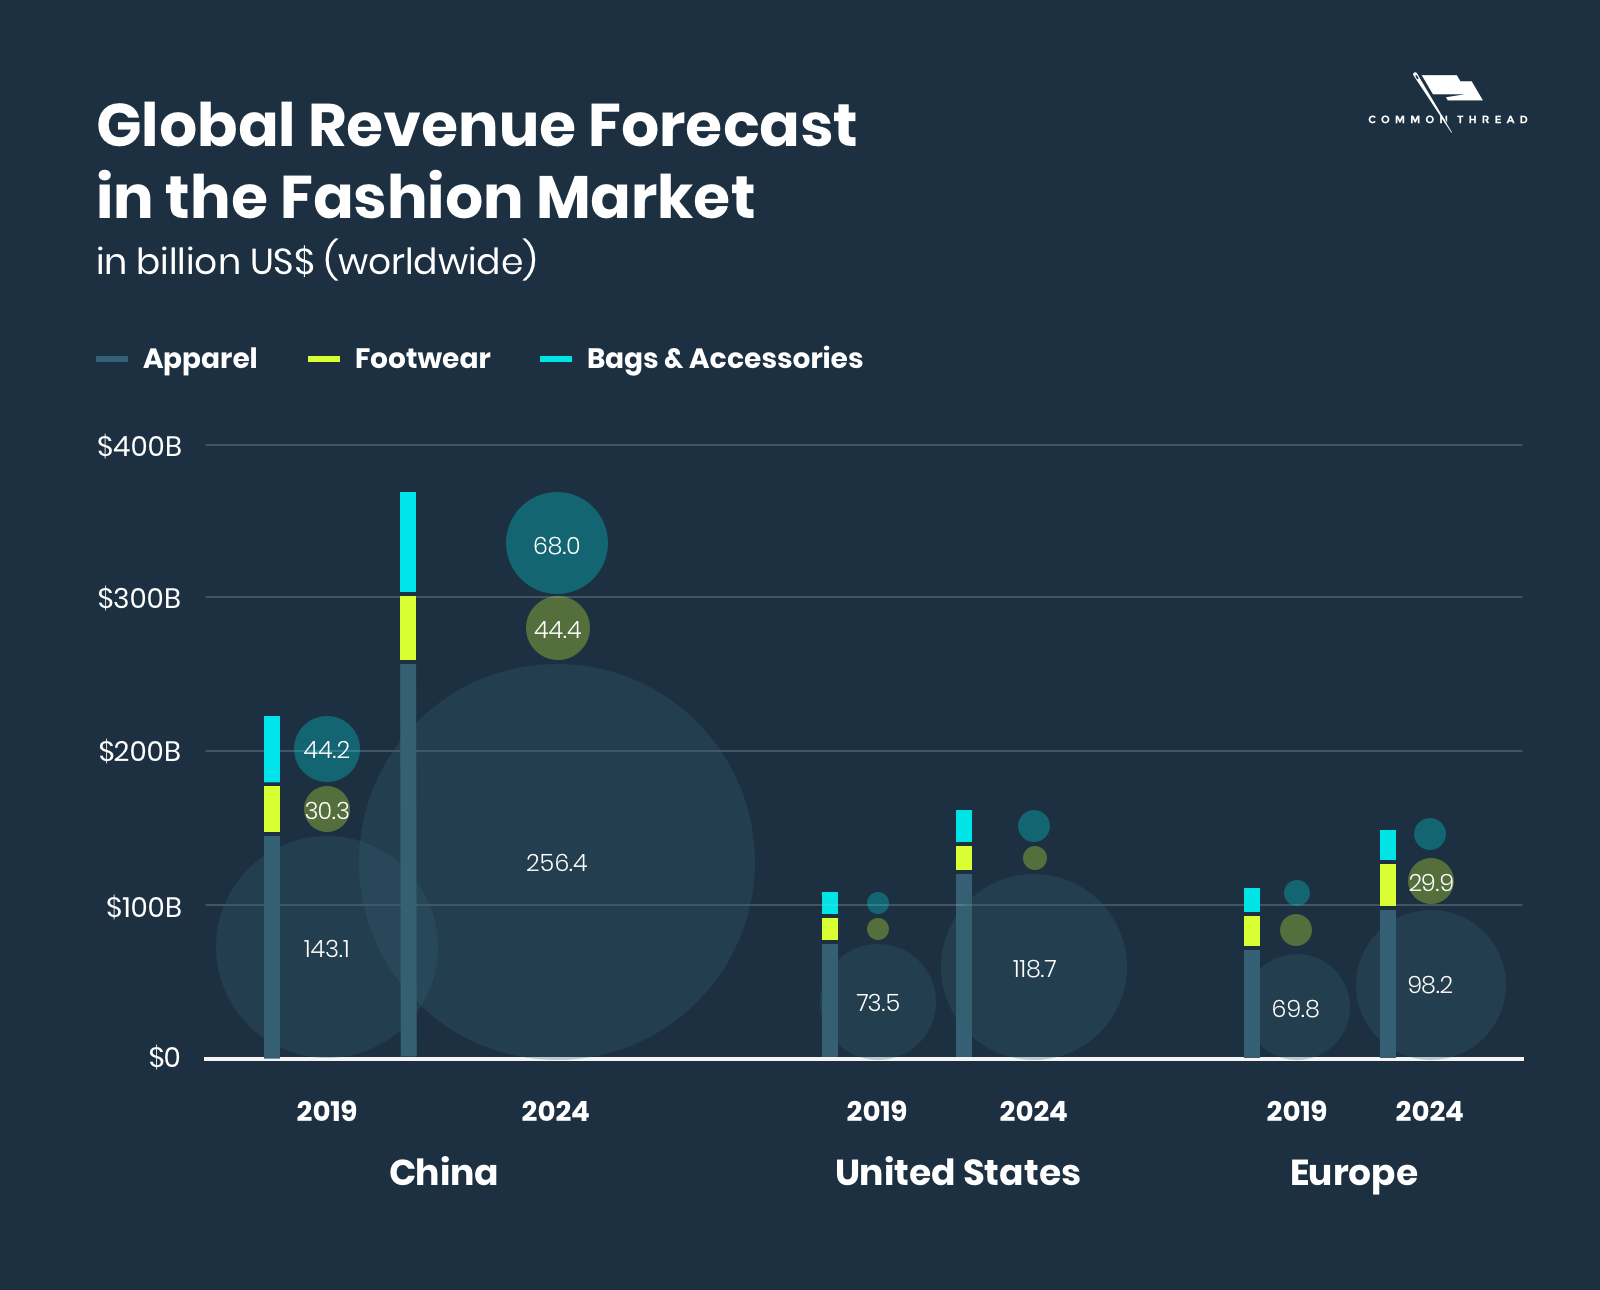 Global revenue forecast in the fashion market